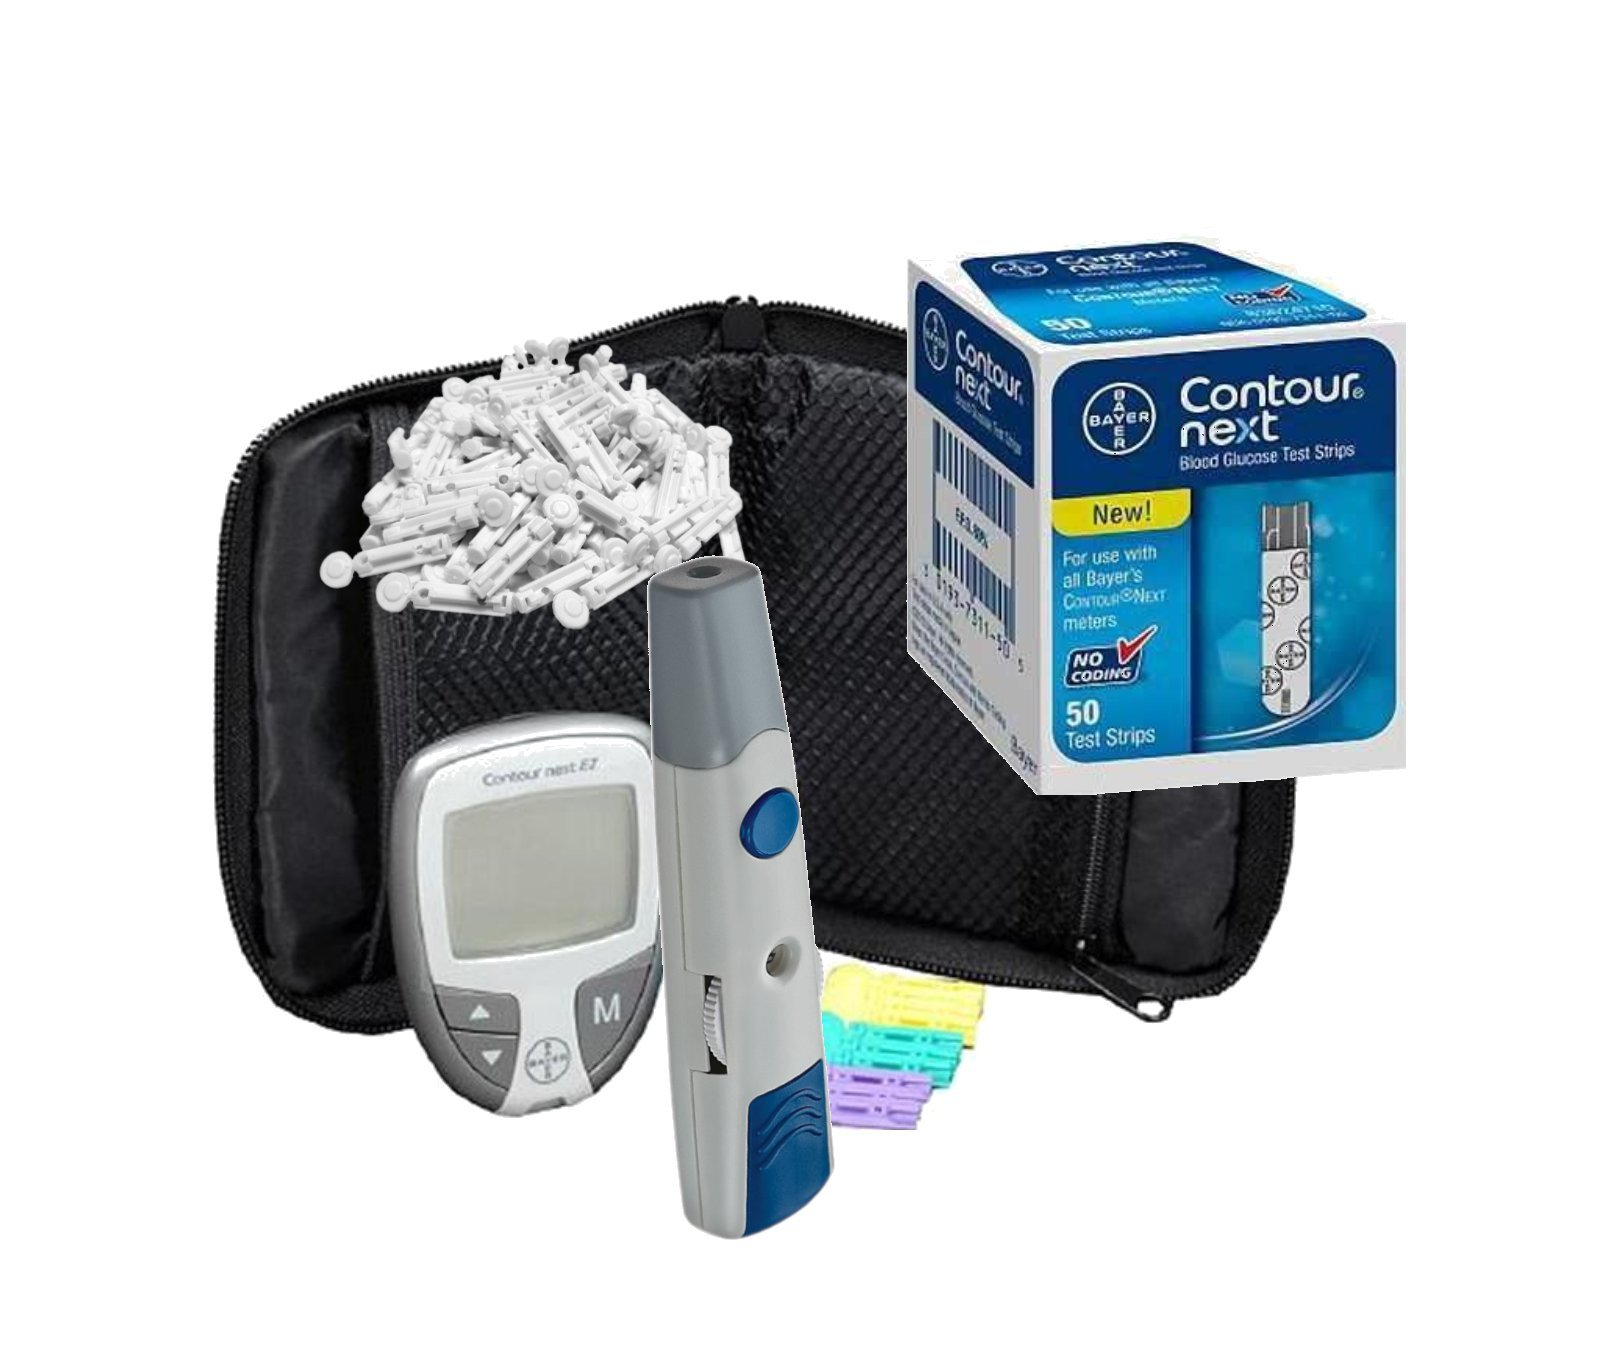 WBM Bayer Contour NEXT EZ Complete Diabetes Blood Glucose Testing Kit, METER, 50 Test Strips, 100 Lancets, Lancing Device, Manual, Carry Case